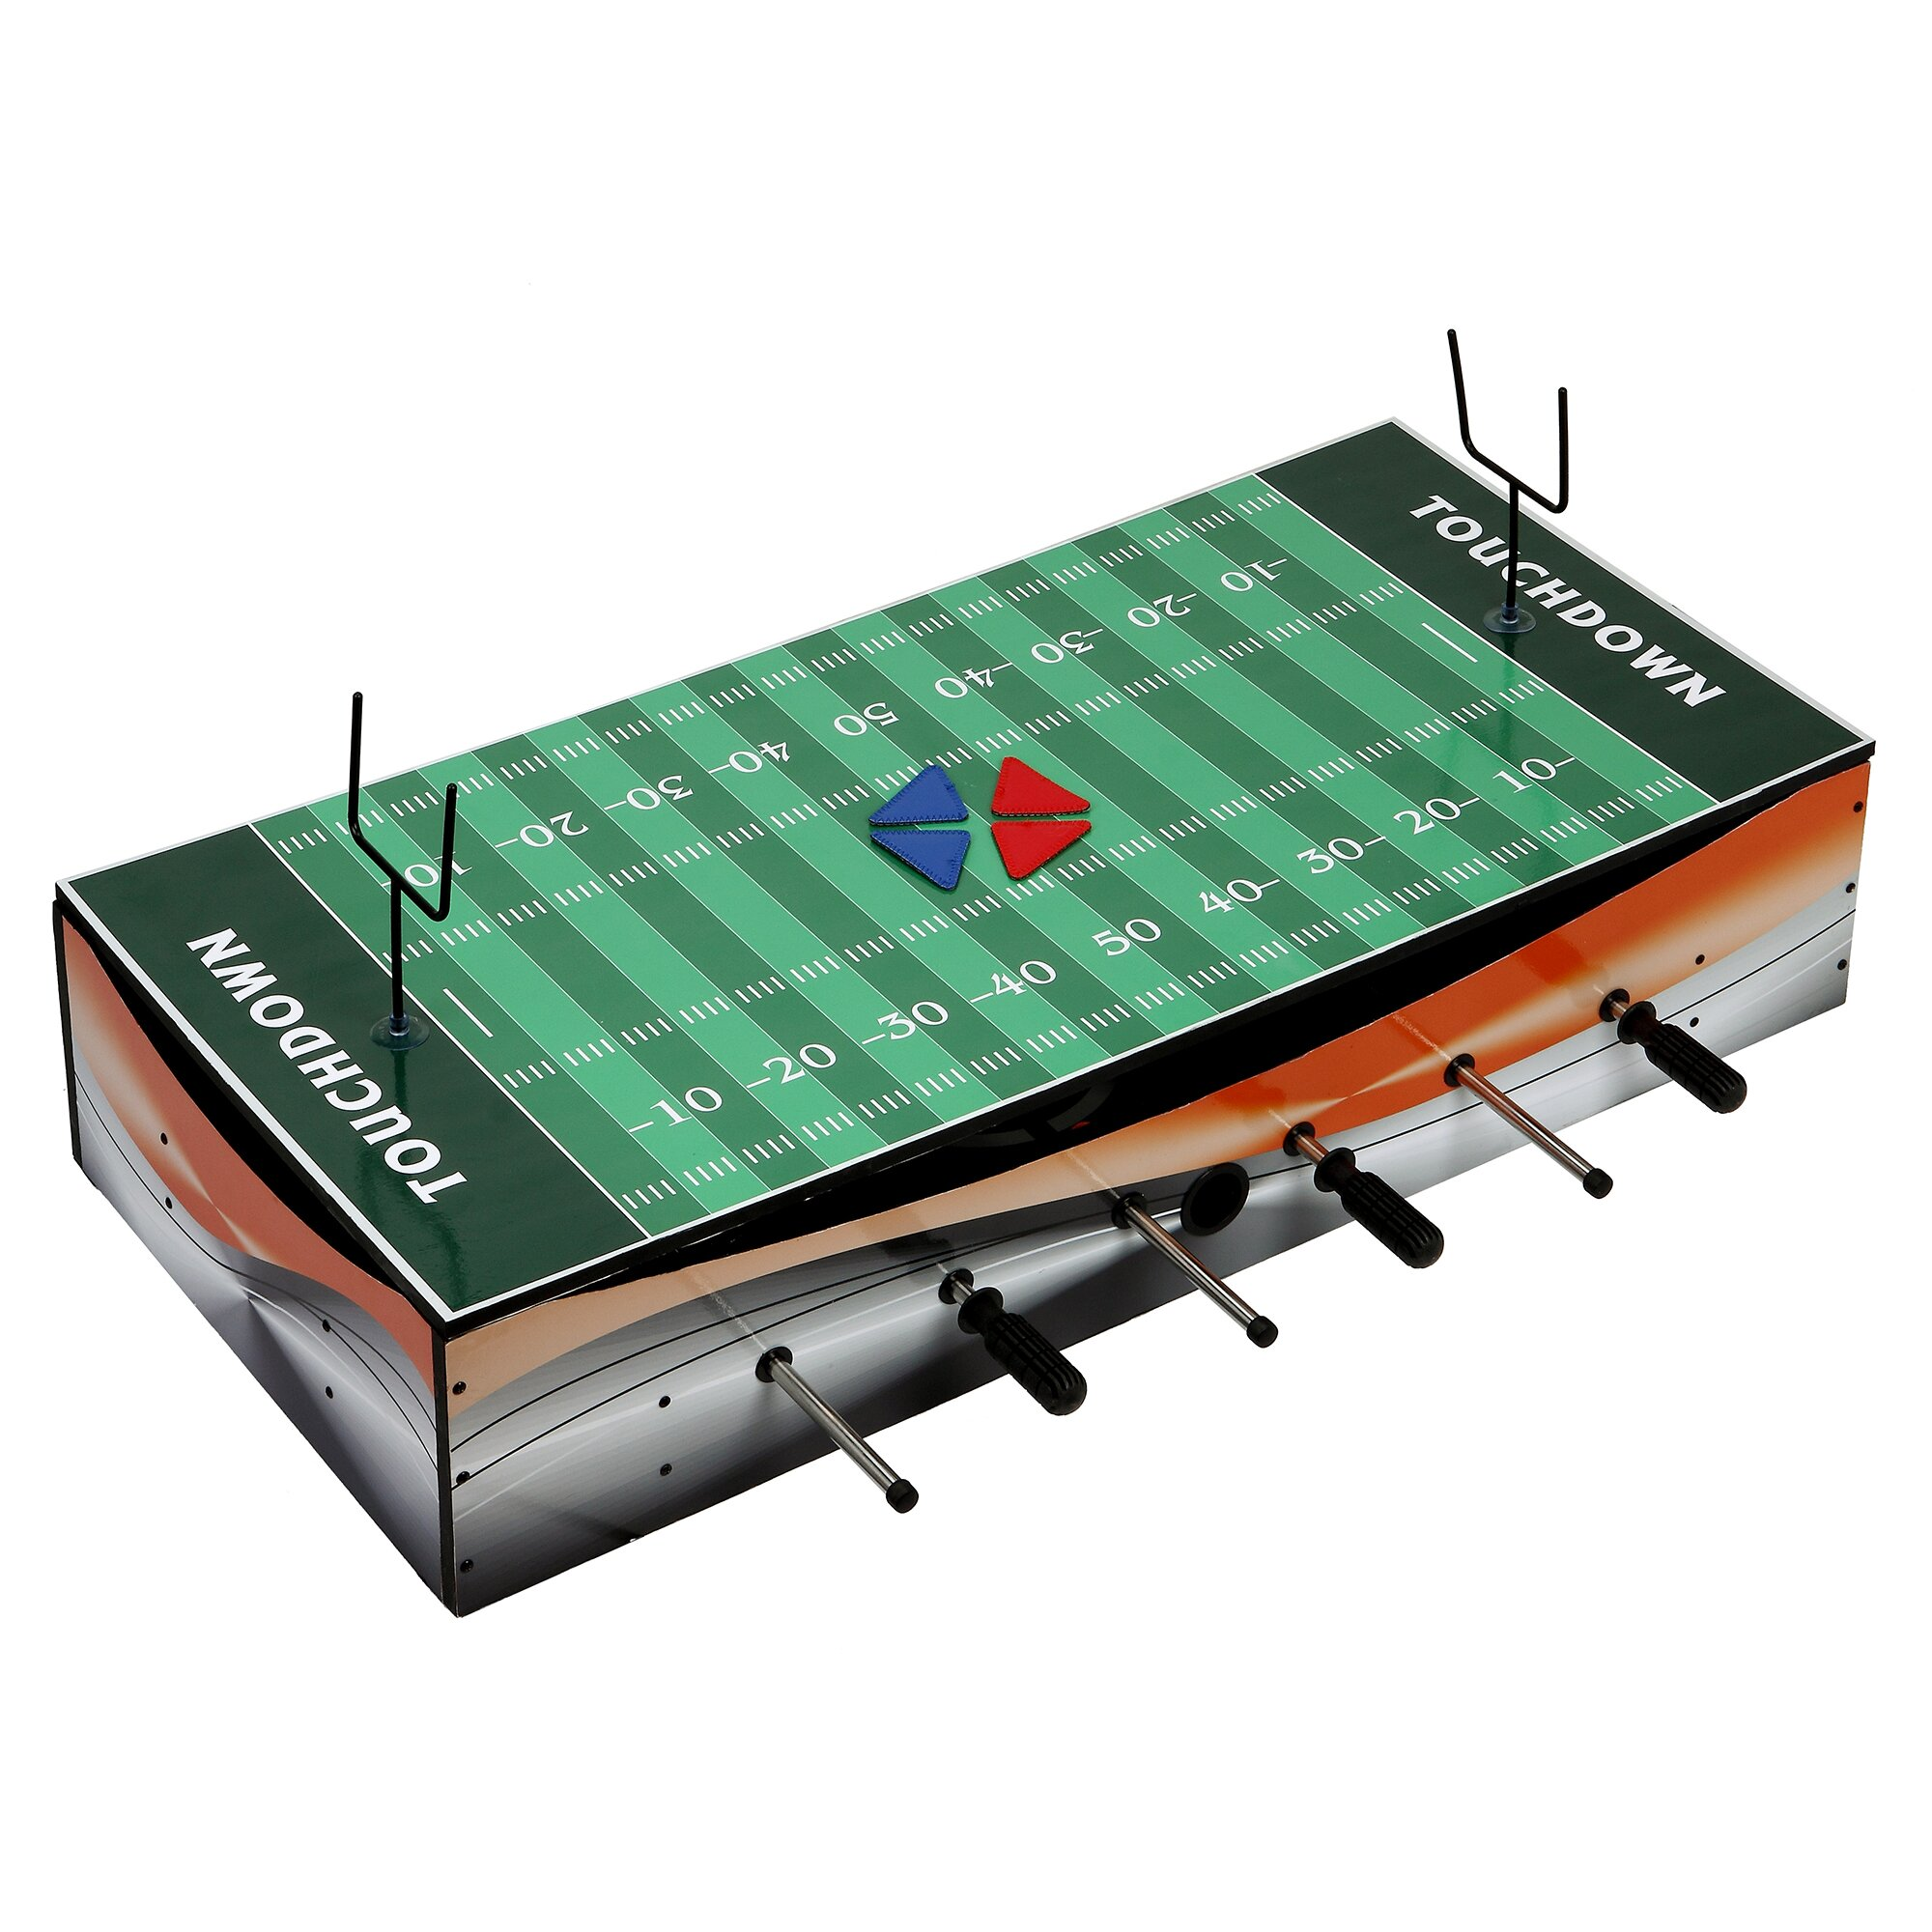 Hathaway games revolver 4 in 1 multi game table for 12 in 1 game table walmart